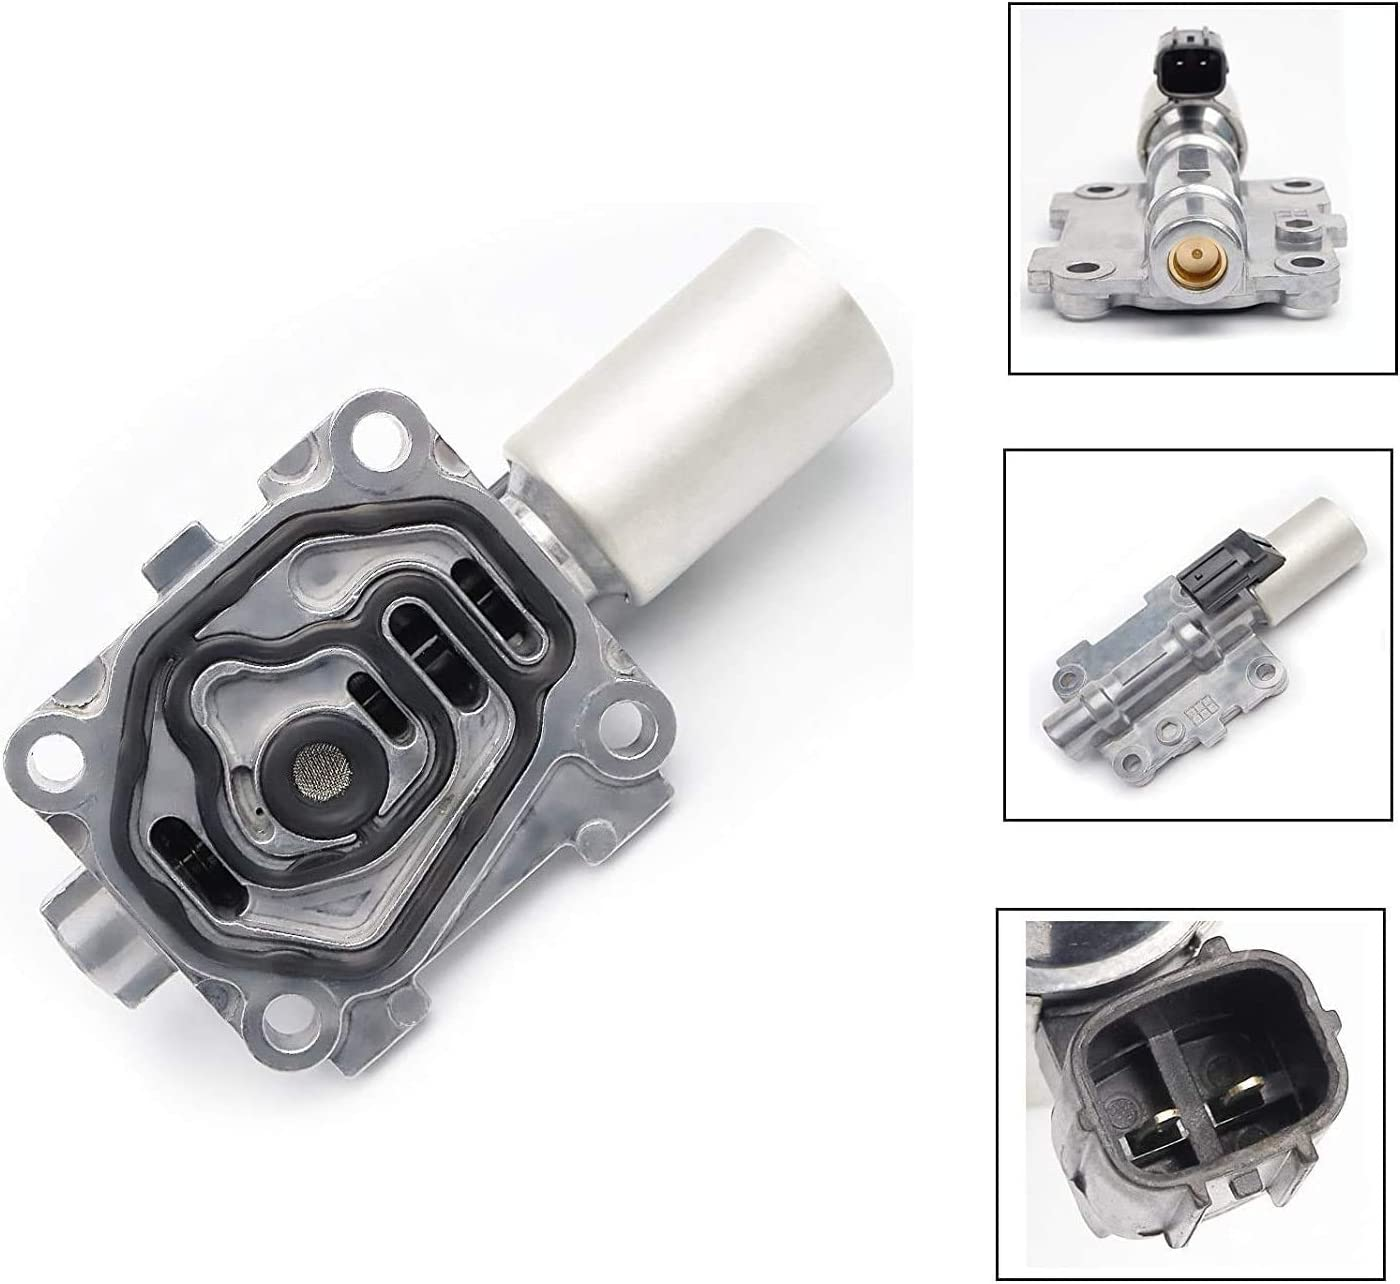 28250-P7W-003 Automatic Transmission AT Clutch Pressure Control Solenoid Valve C with Gasket for Honda Accord Odyssey Pilot Acura MDX TL CL